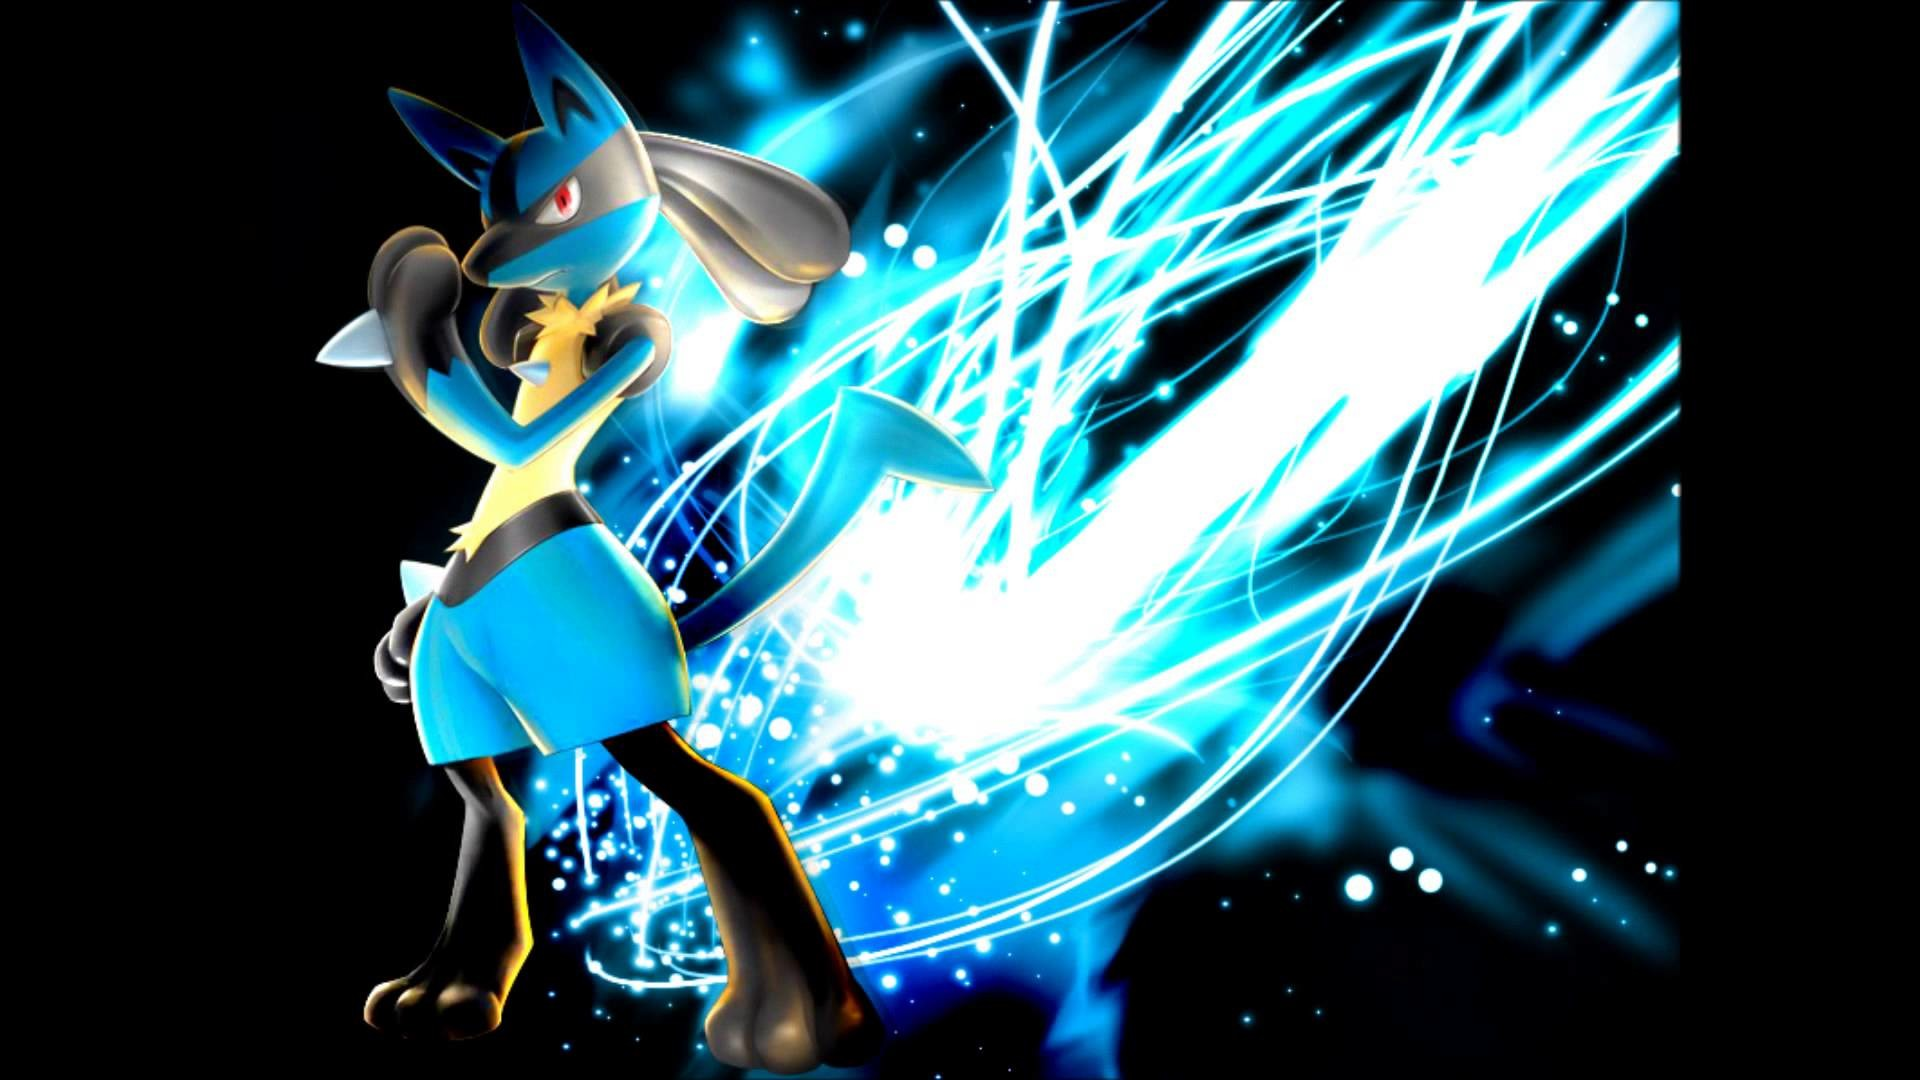 Res: 1920x1080, Epic Pokemon Wallpaper Mega Lucario Nintendo Japan celebrates the new year  with a new Mario themed wallpaper. absolutely stunning The Legend of…